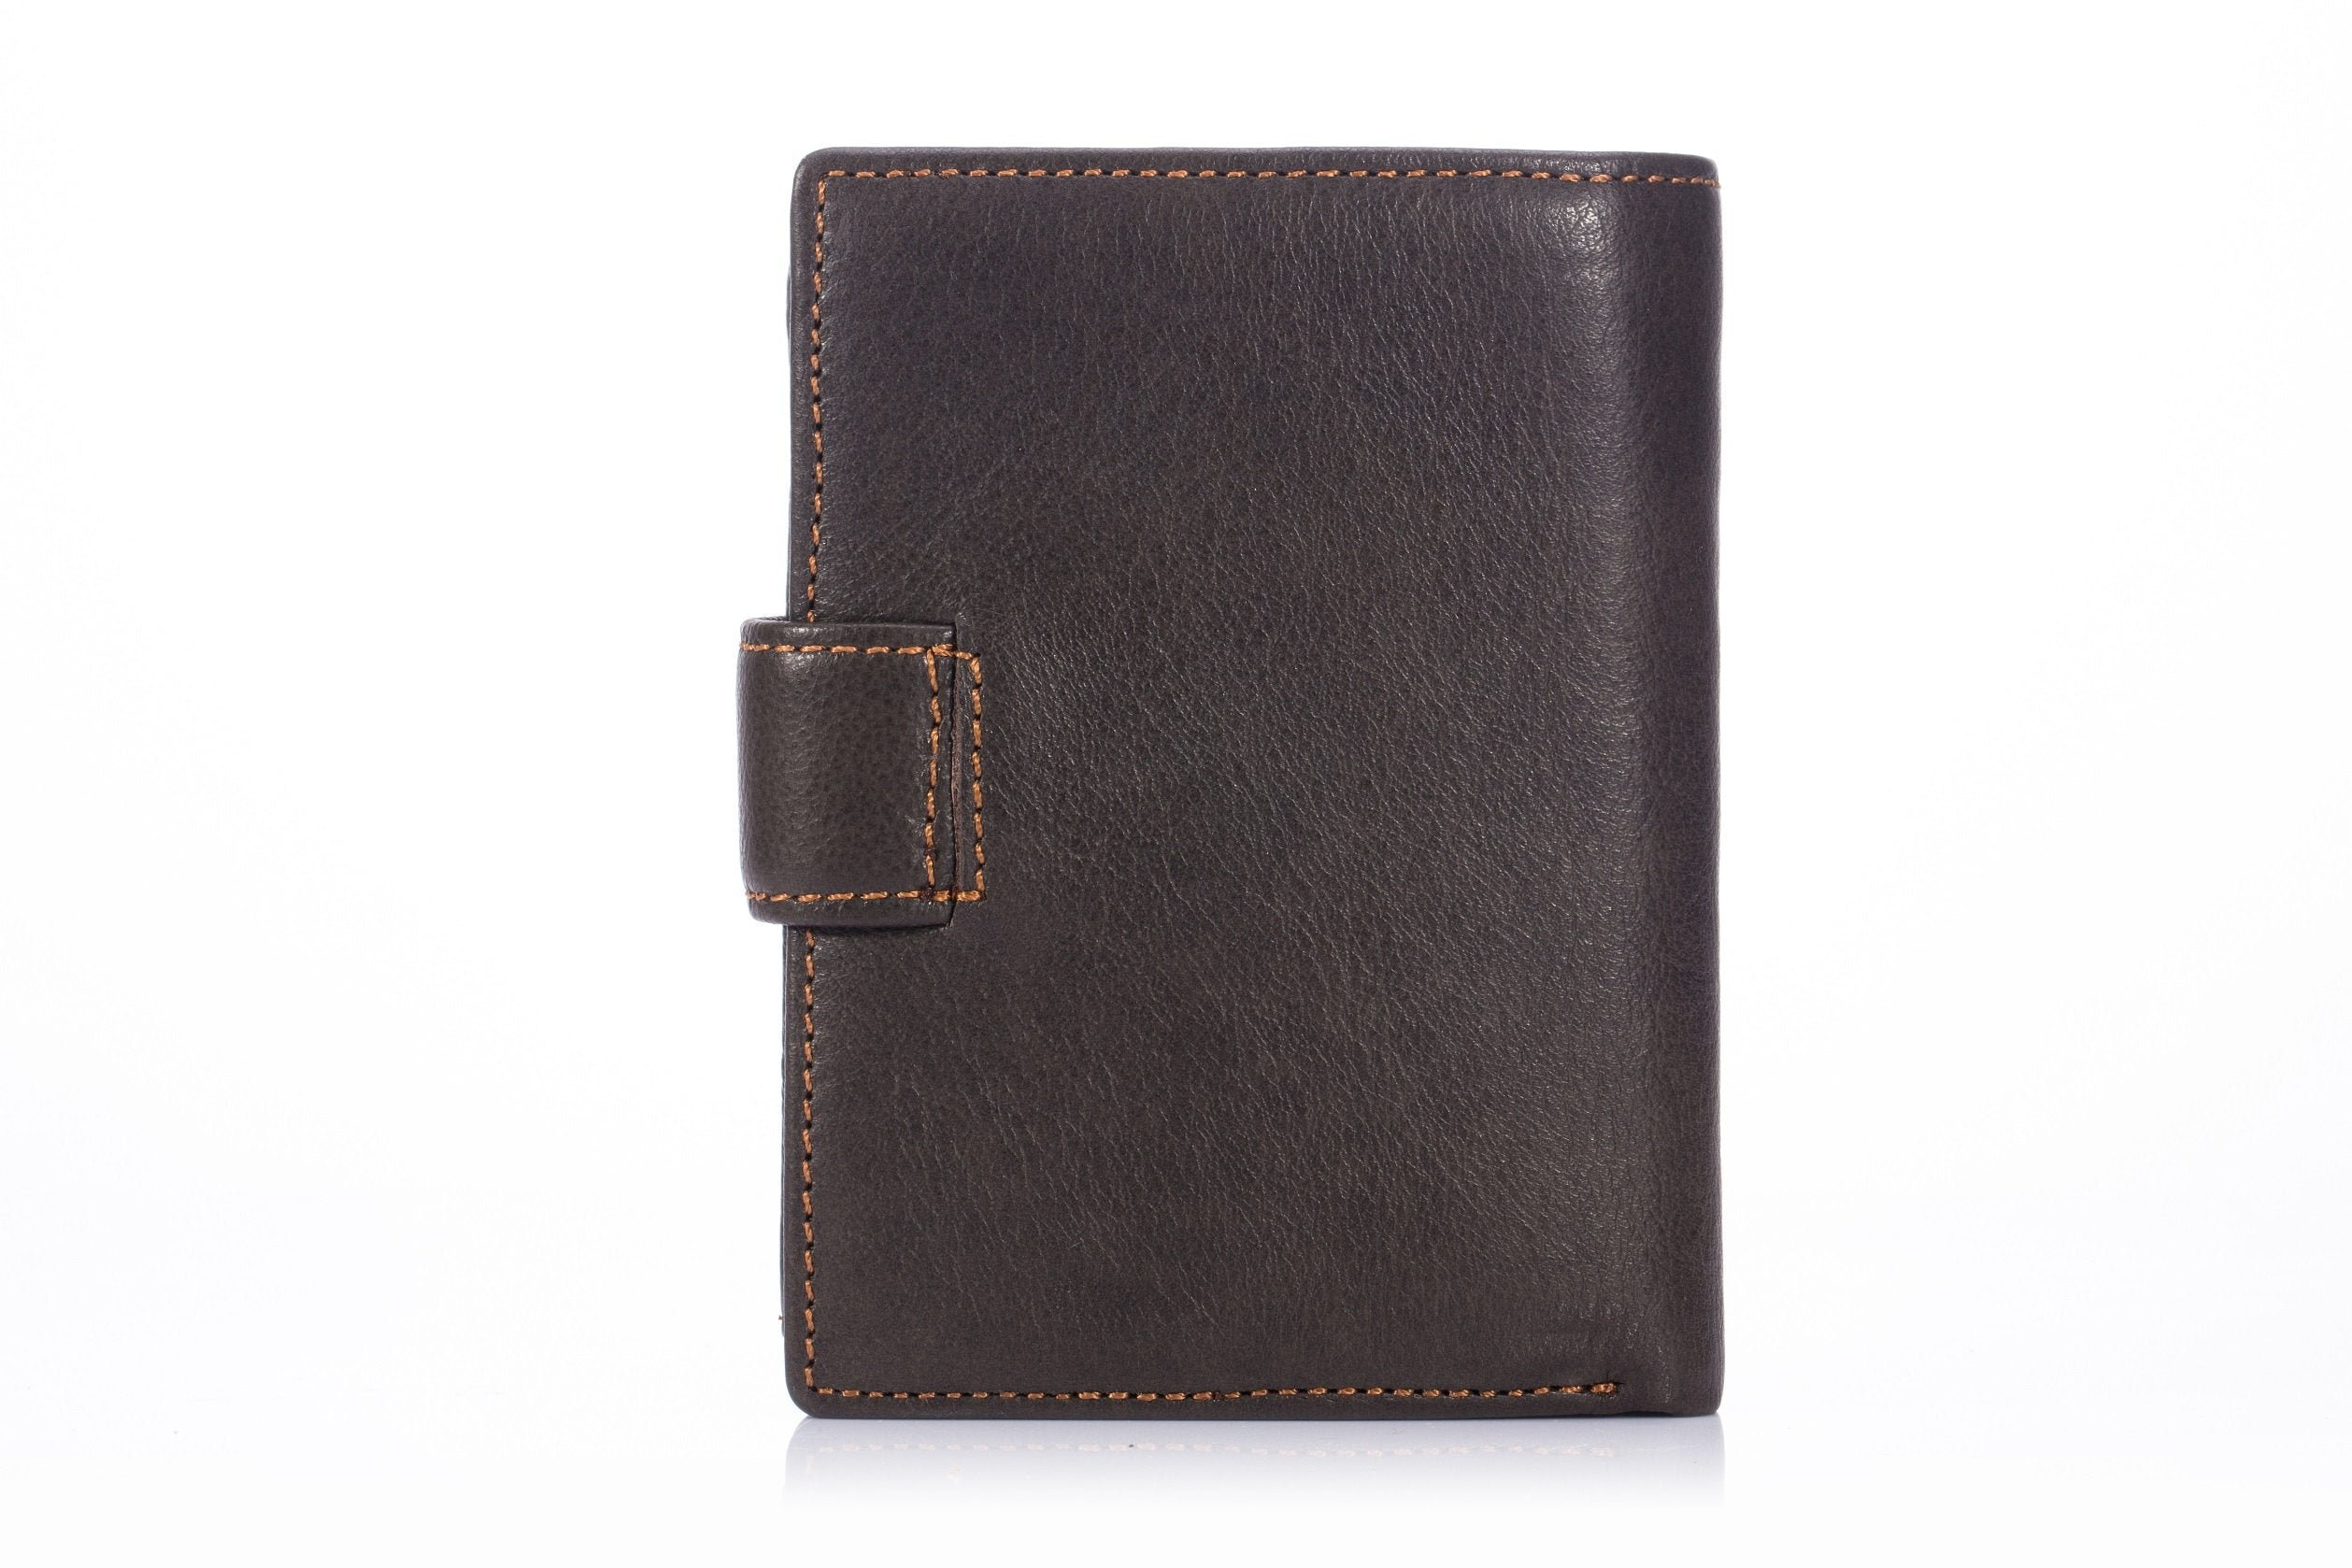 BULLCAPTAIN LEATHER BIFLOD RFID BLOCKING MEN WALLET WITH  COIN POCKET - 012